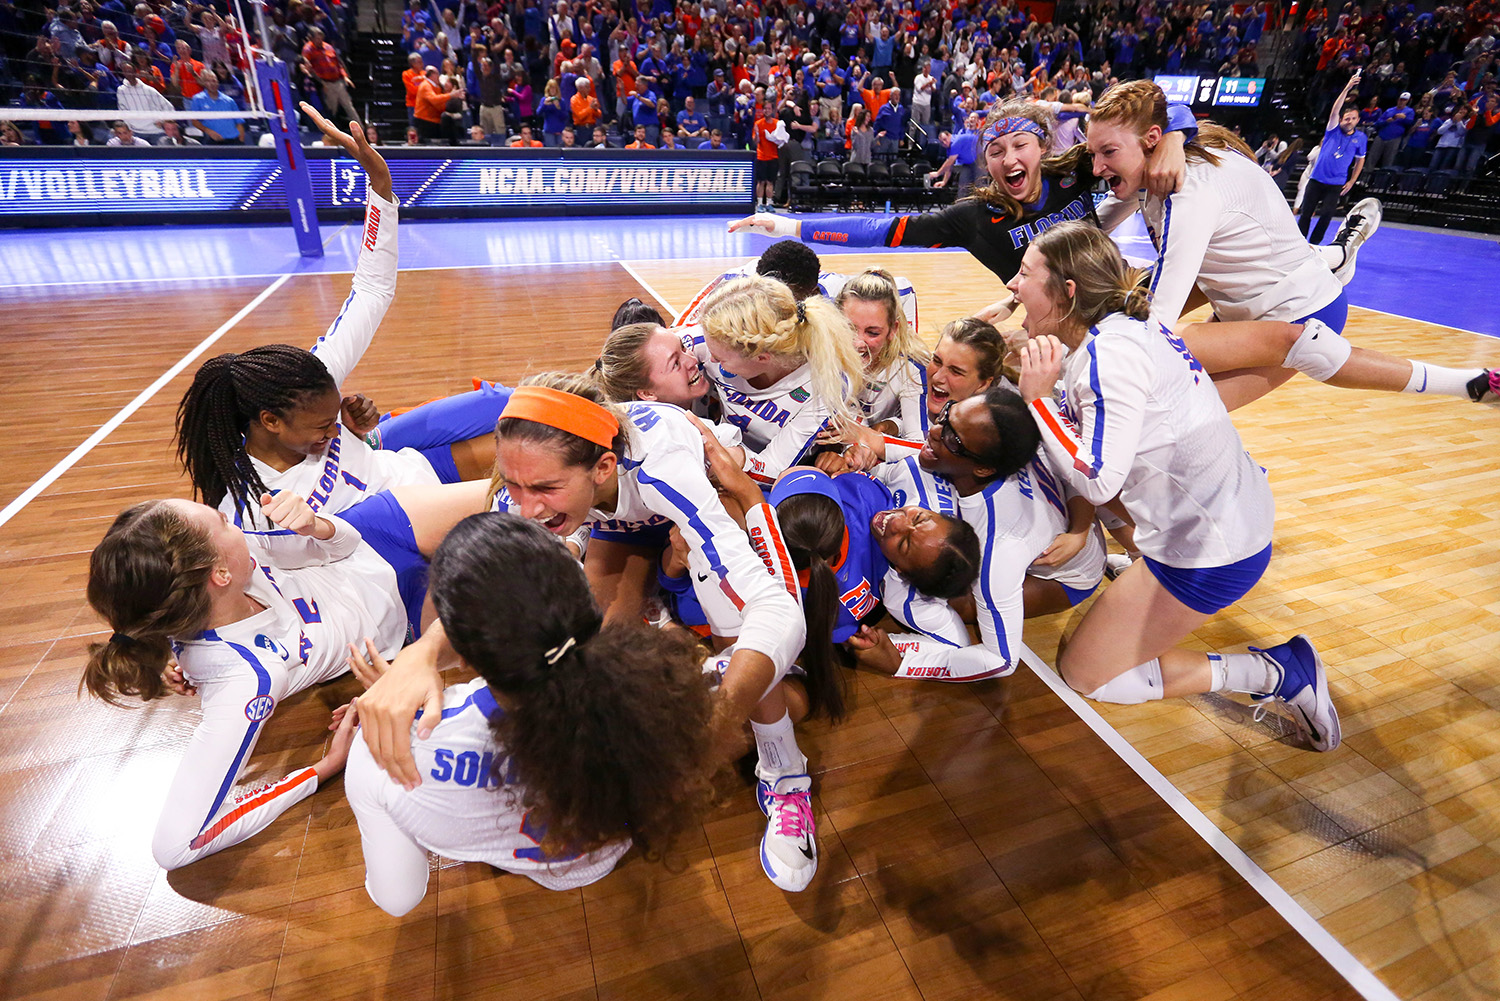 The Florida Gators defeated the USC Trojans in five sets to advance to the NCAA Final Four at the Stephen C. O'Connell Center on Dec. 9, 2017 in Gainesville, Fla. (Photo by Matt Stamey)